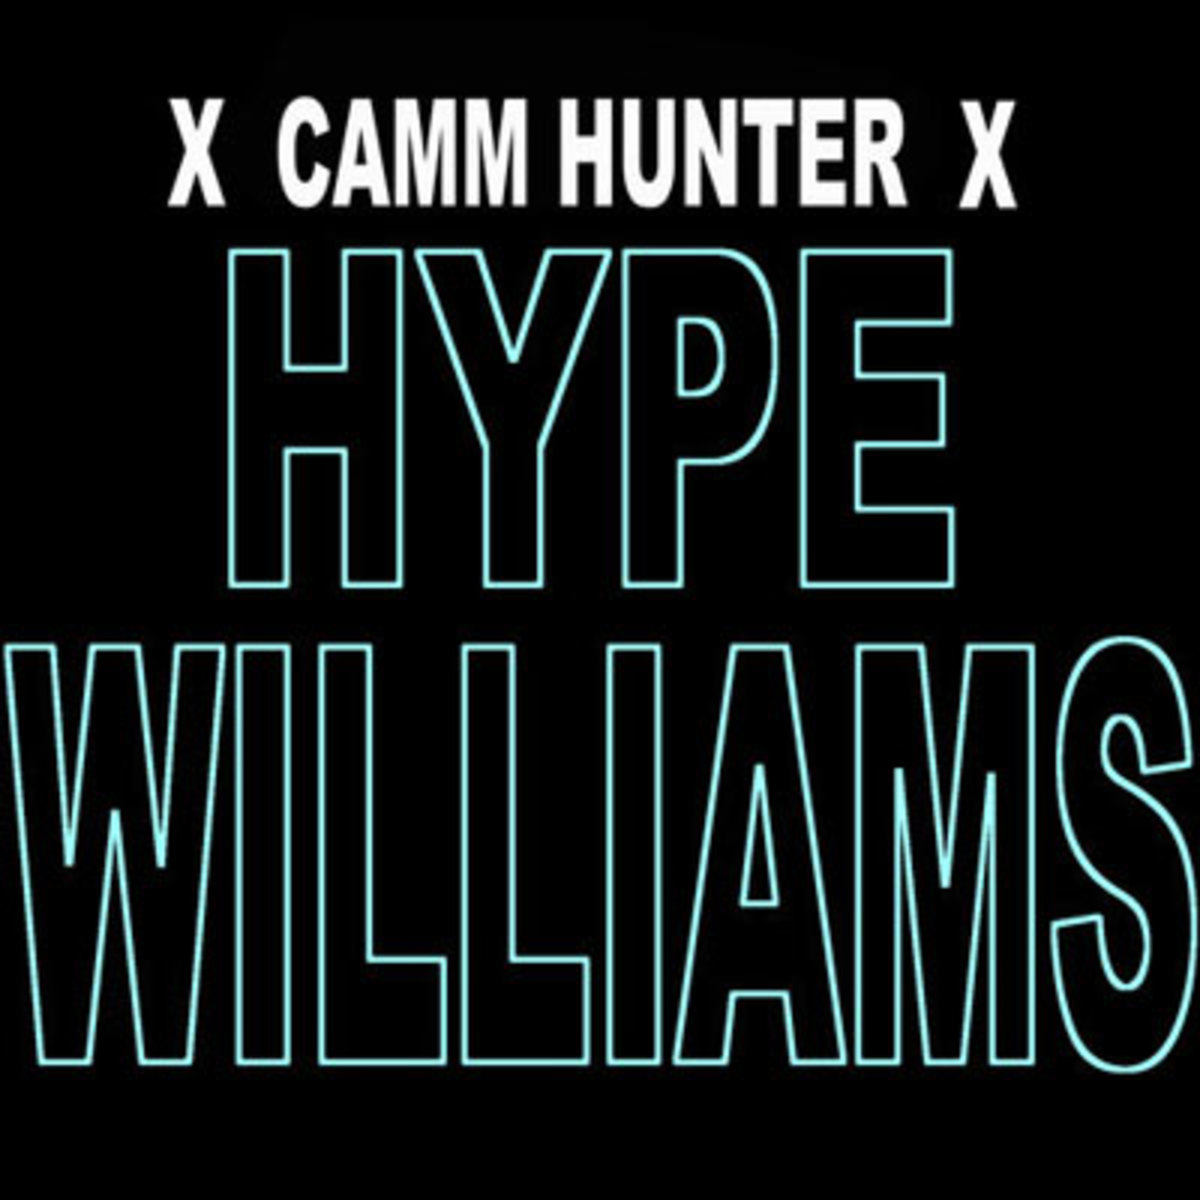 cammhunter-hypewilliams.jpg